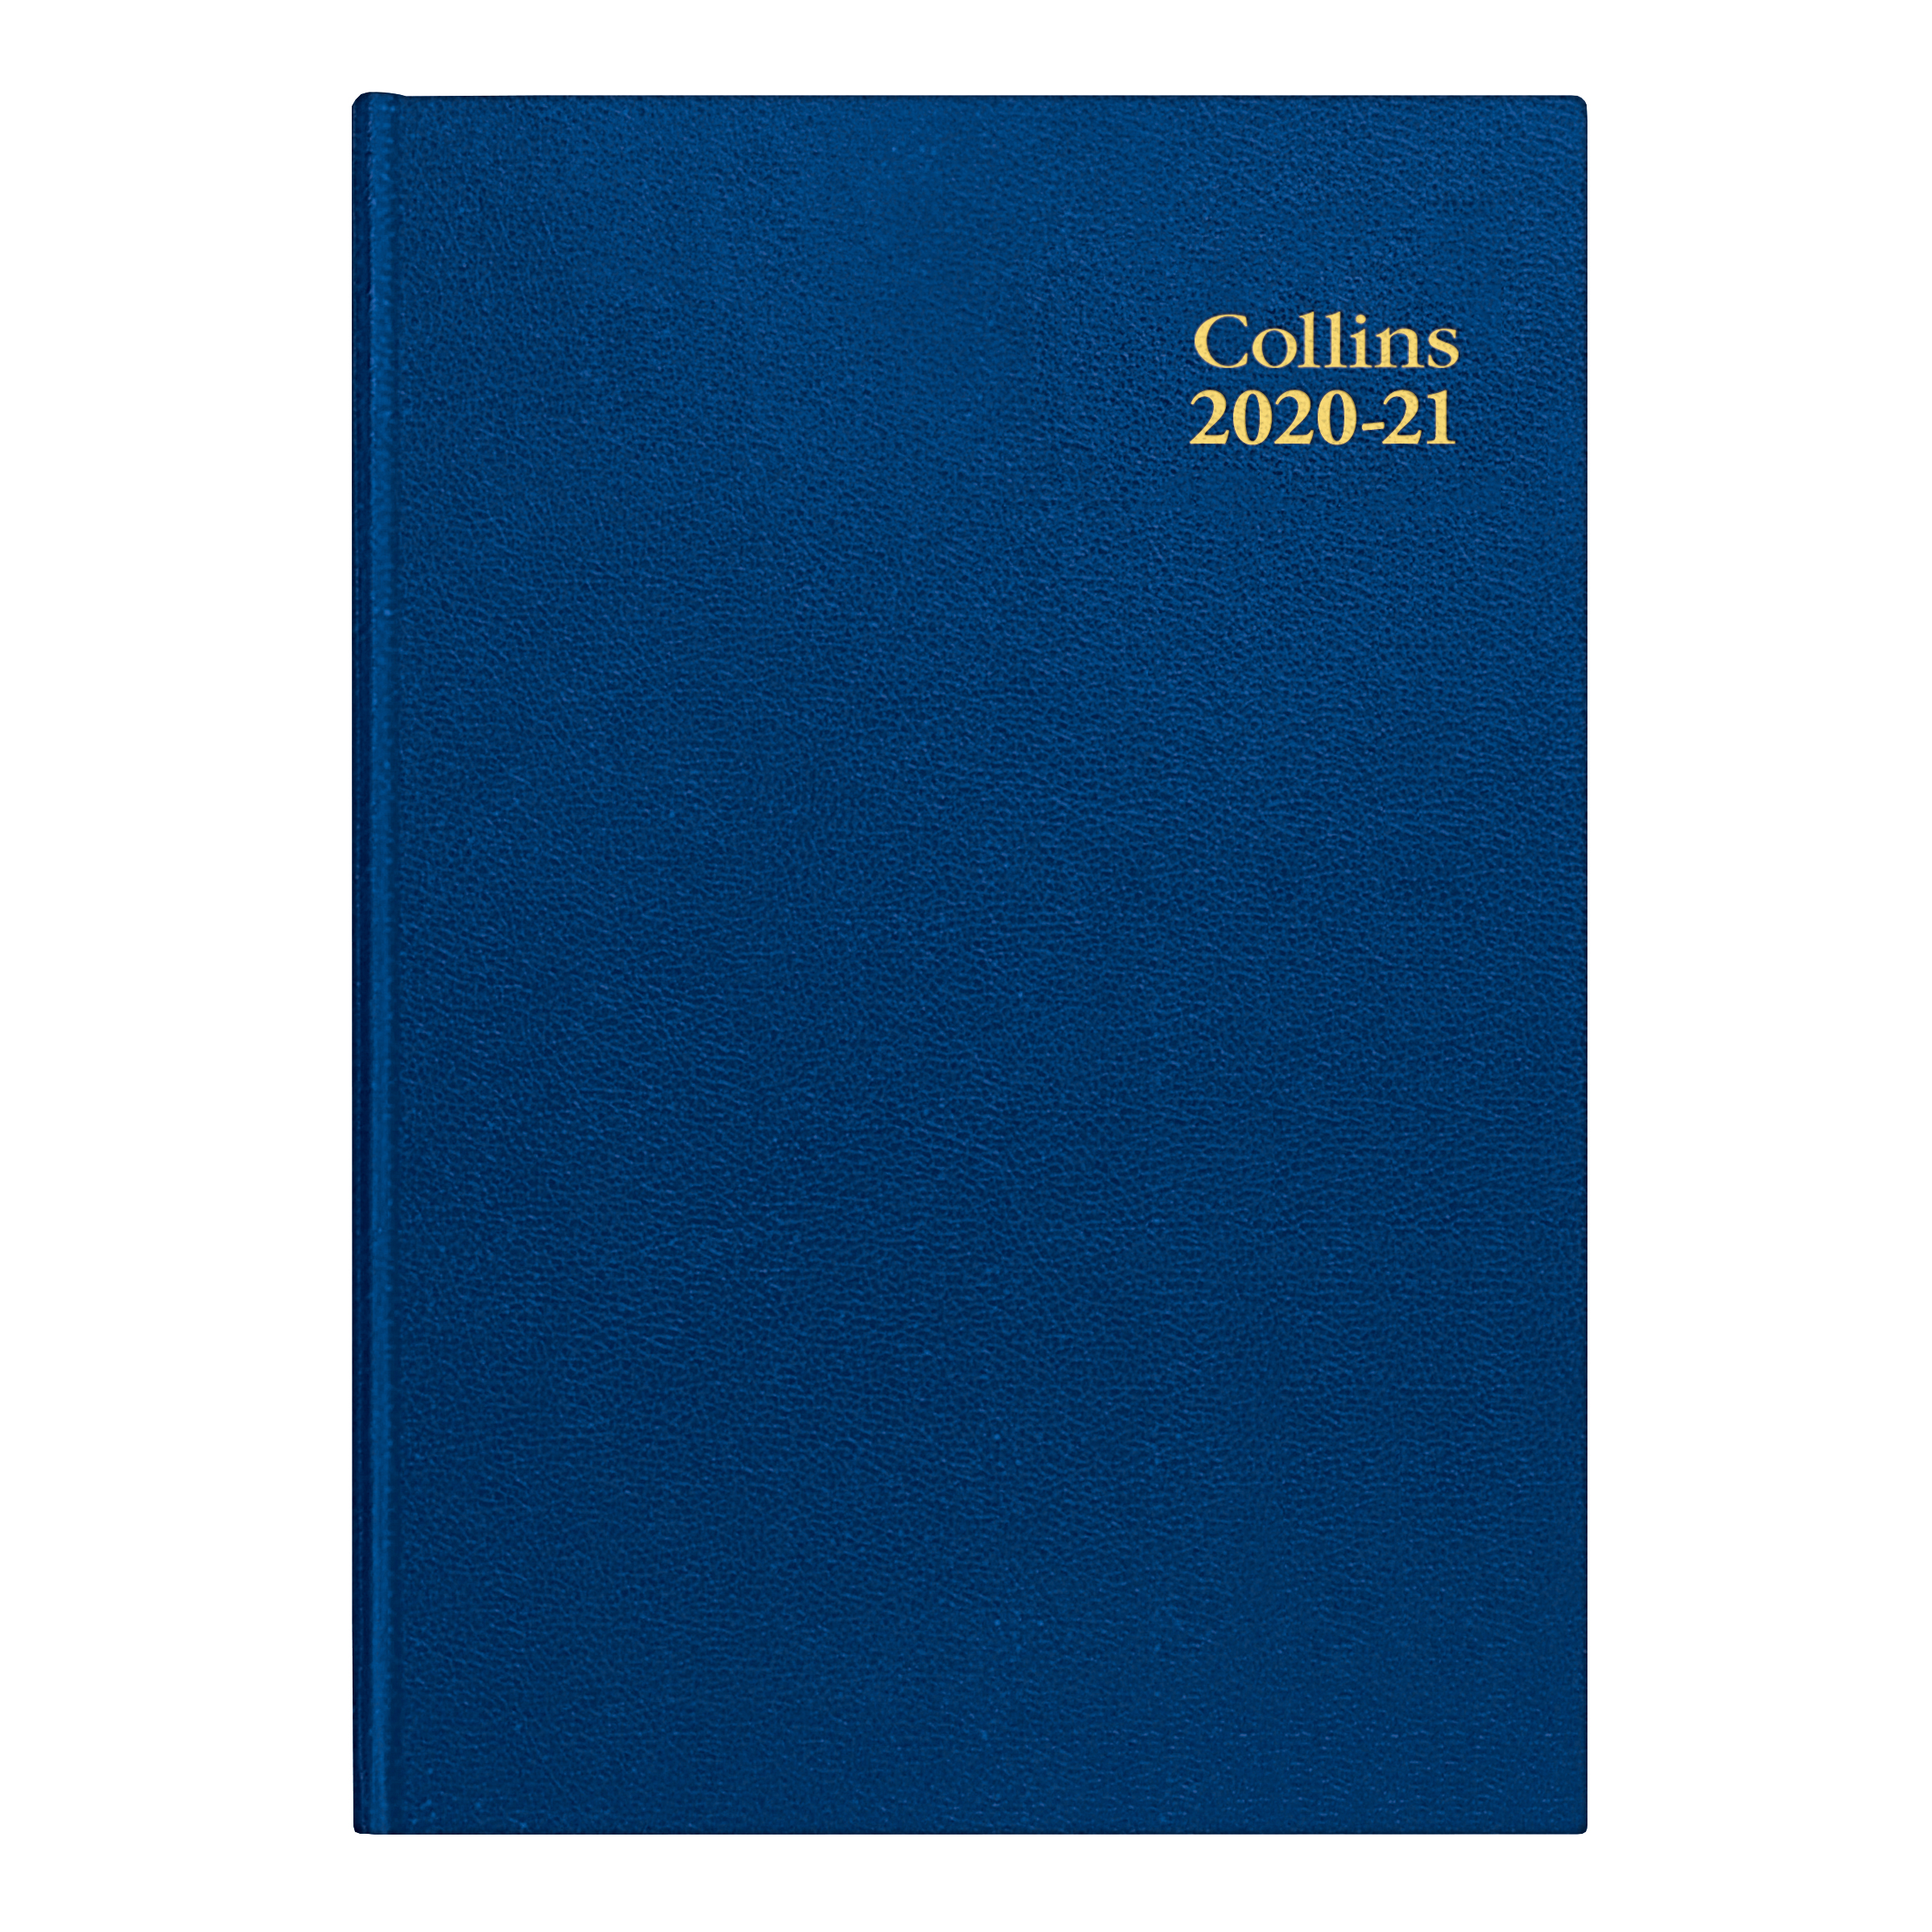 Collins 2020/21 Academic Diary Day-to-Page A5 Ref 52M 2021